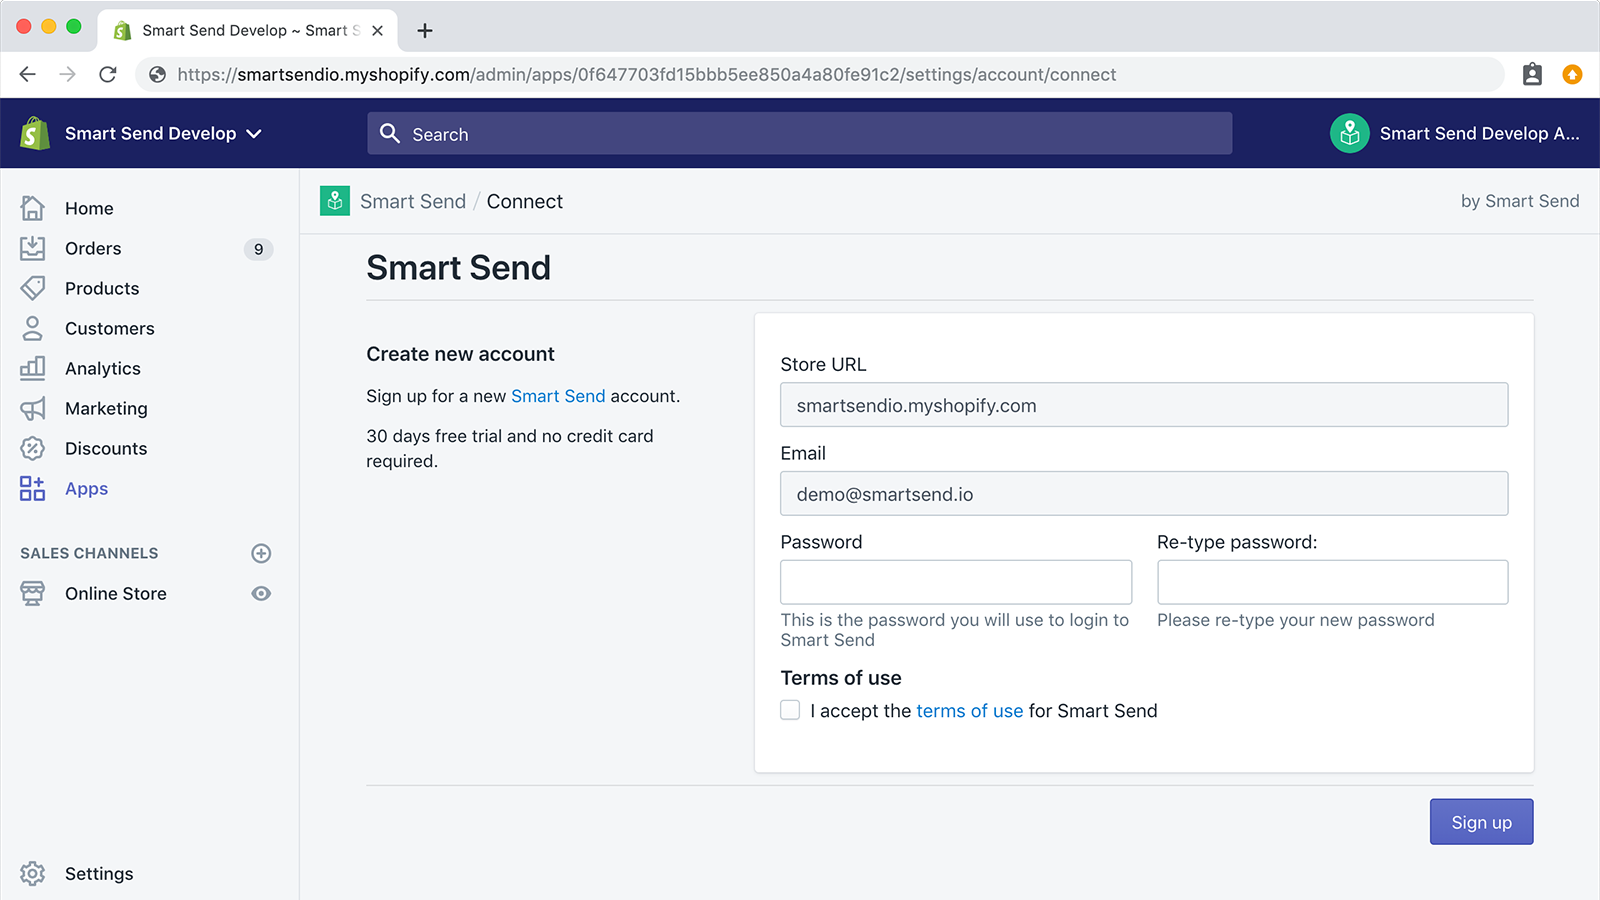 Signup for a free Smart Send trials directly from the app